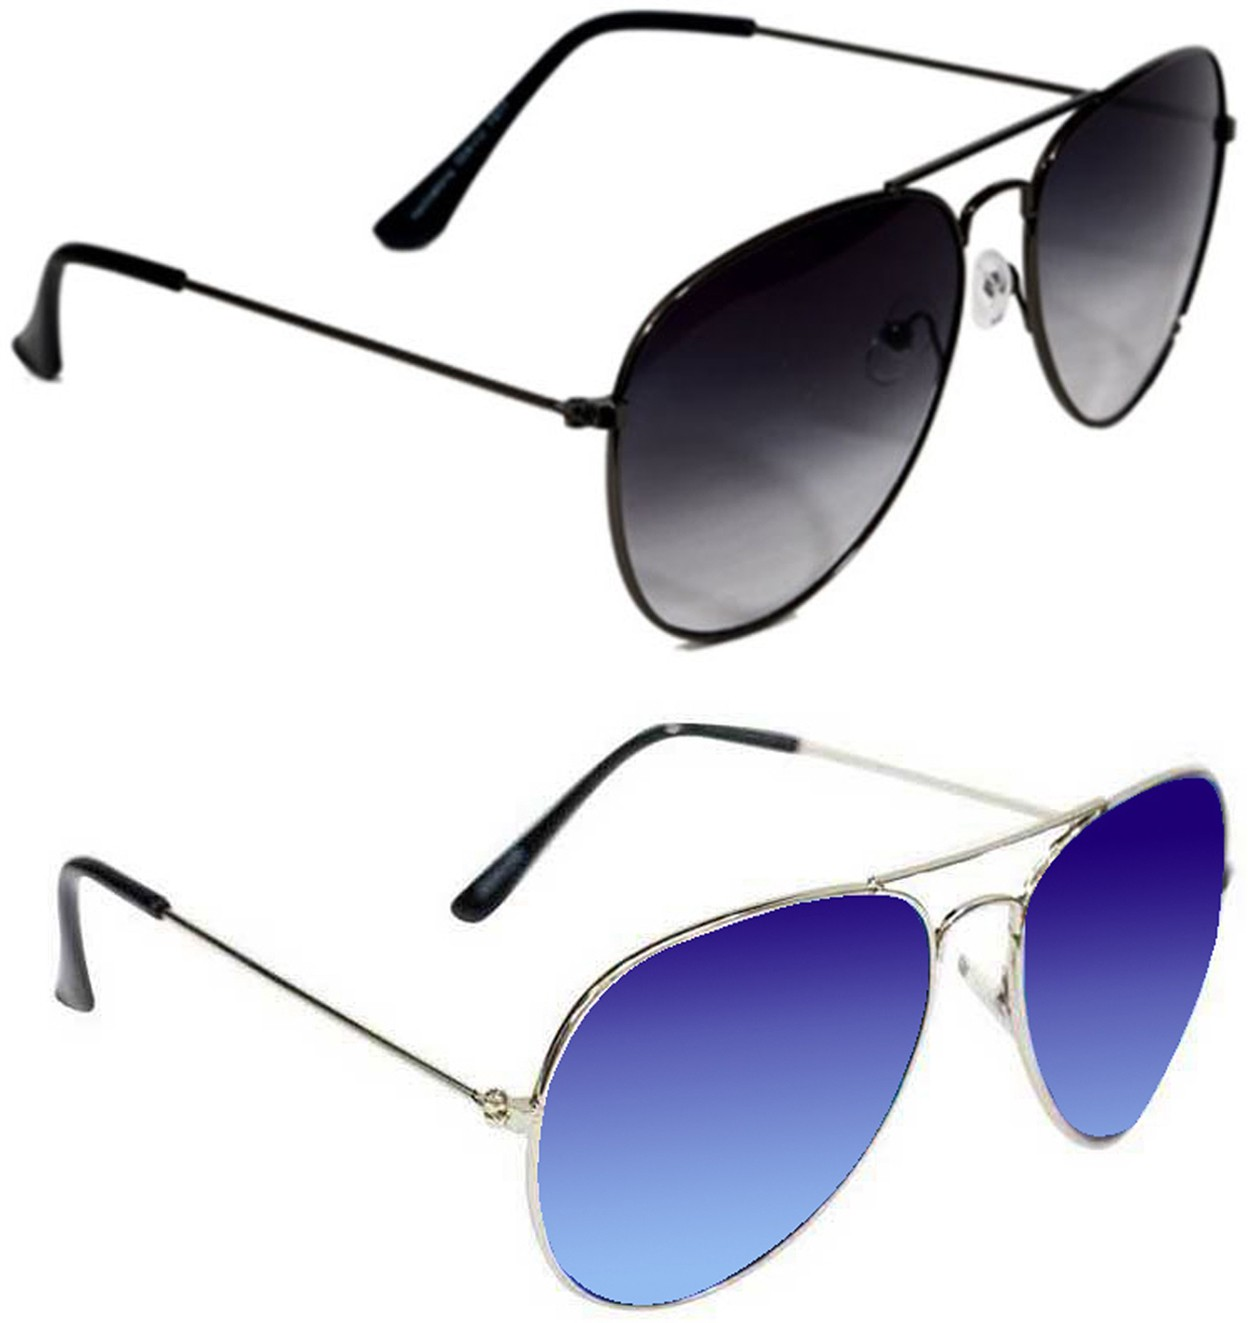 Deals - Delhi - Provogue, IDEE... <br> Mens Sunglasses<br> Category - sunglasses<br> Business - Flipkart.com